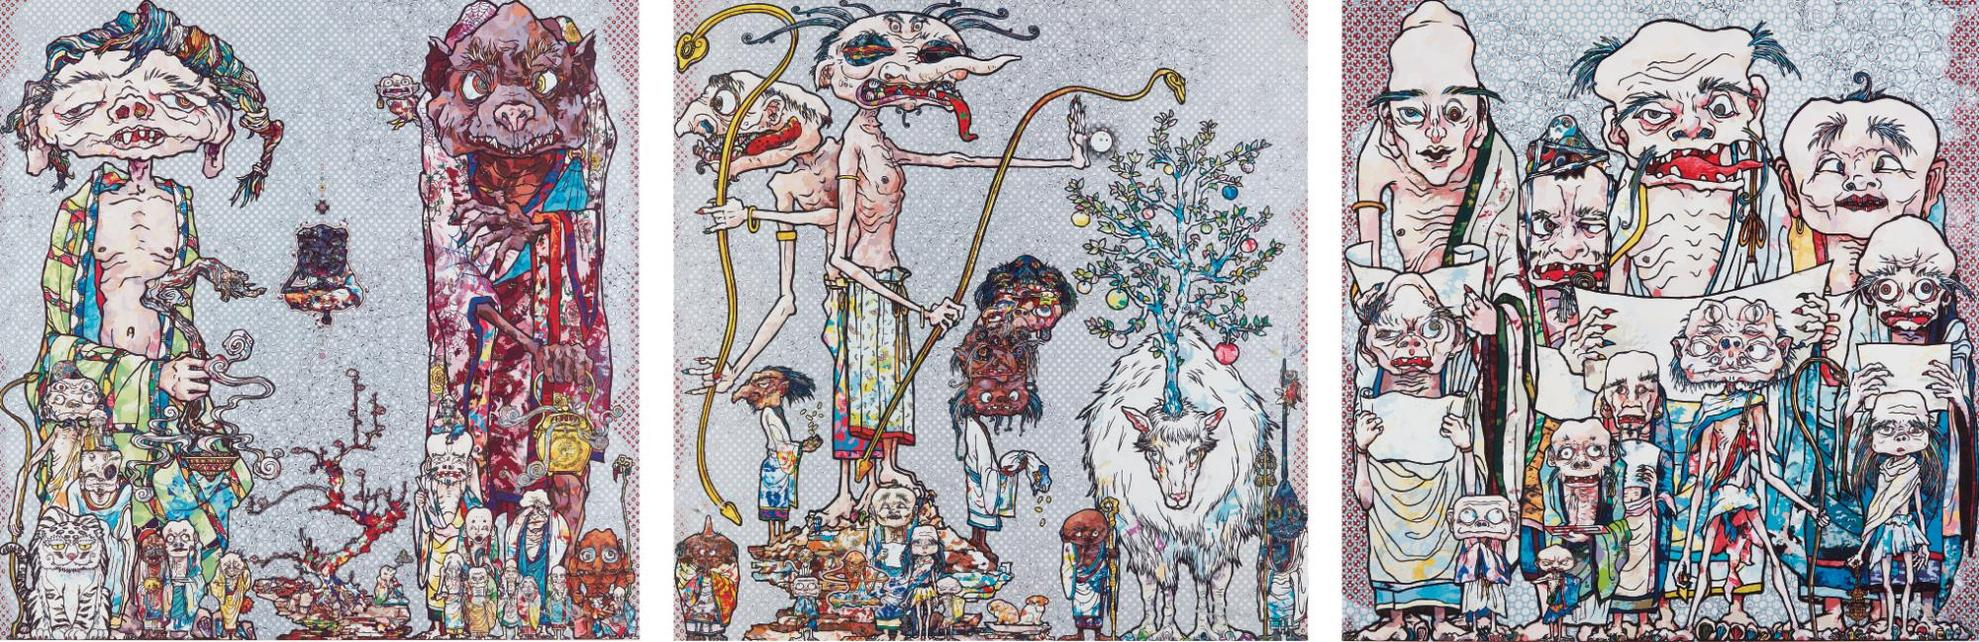 Takashi Murakami-12 Arhats; Behold! Tis The Netherworld; And Assignation Of A Spirit!-2014